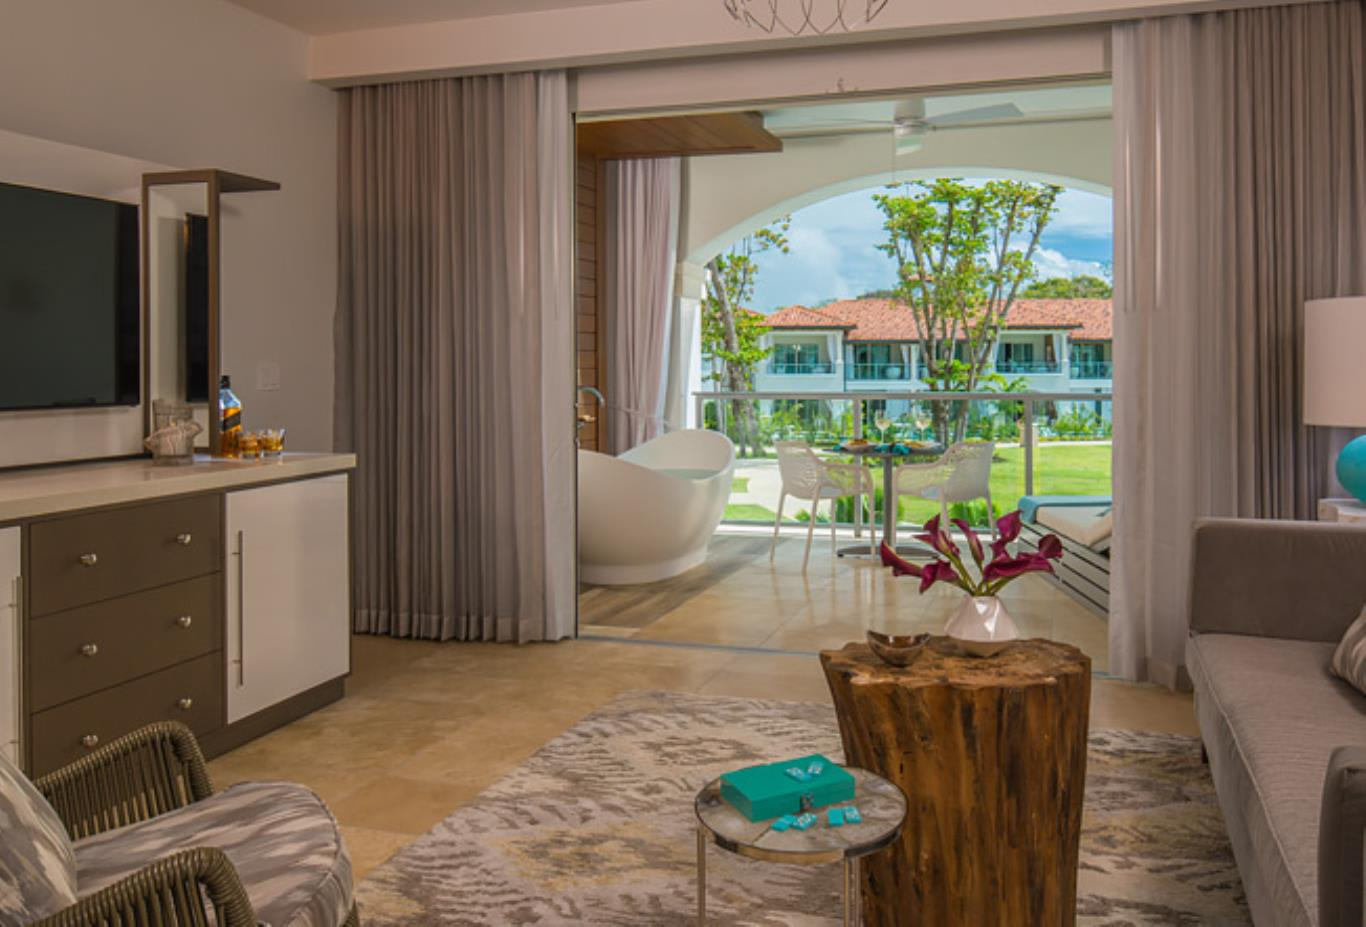 OL1B Royal Seaside Oceanview Crystal Lagoon One Bedroom Oceanview butler Suite with Balcony Tranquillity Soaking Tub